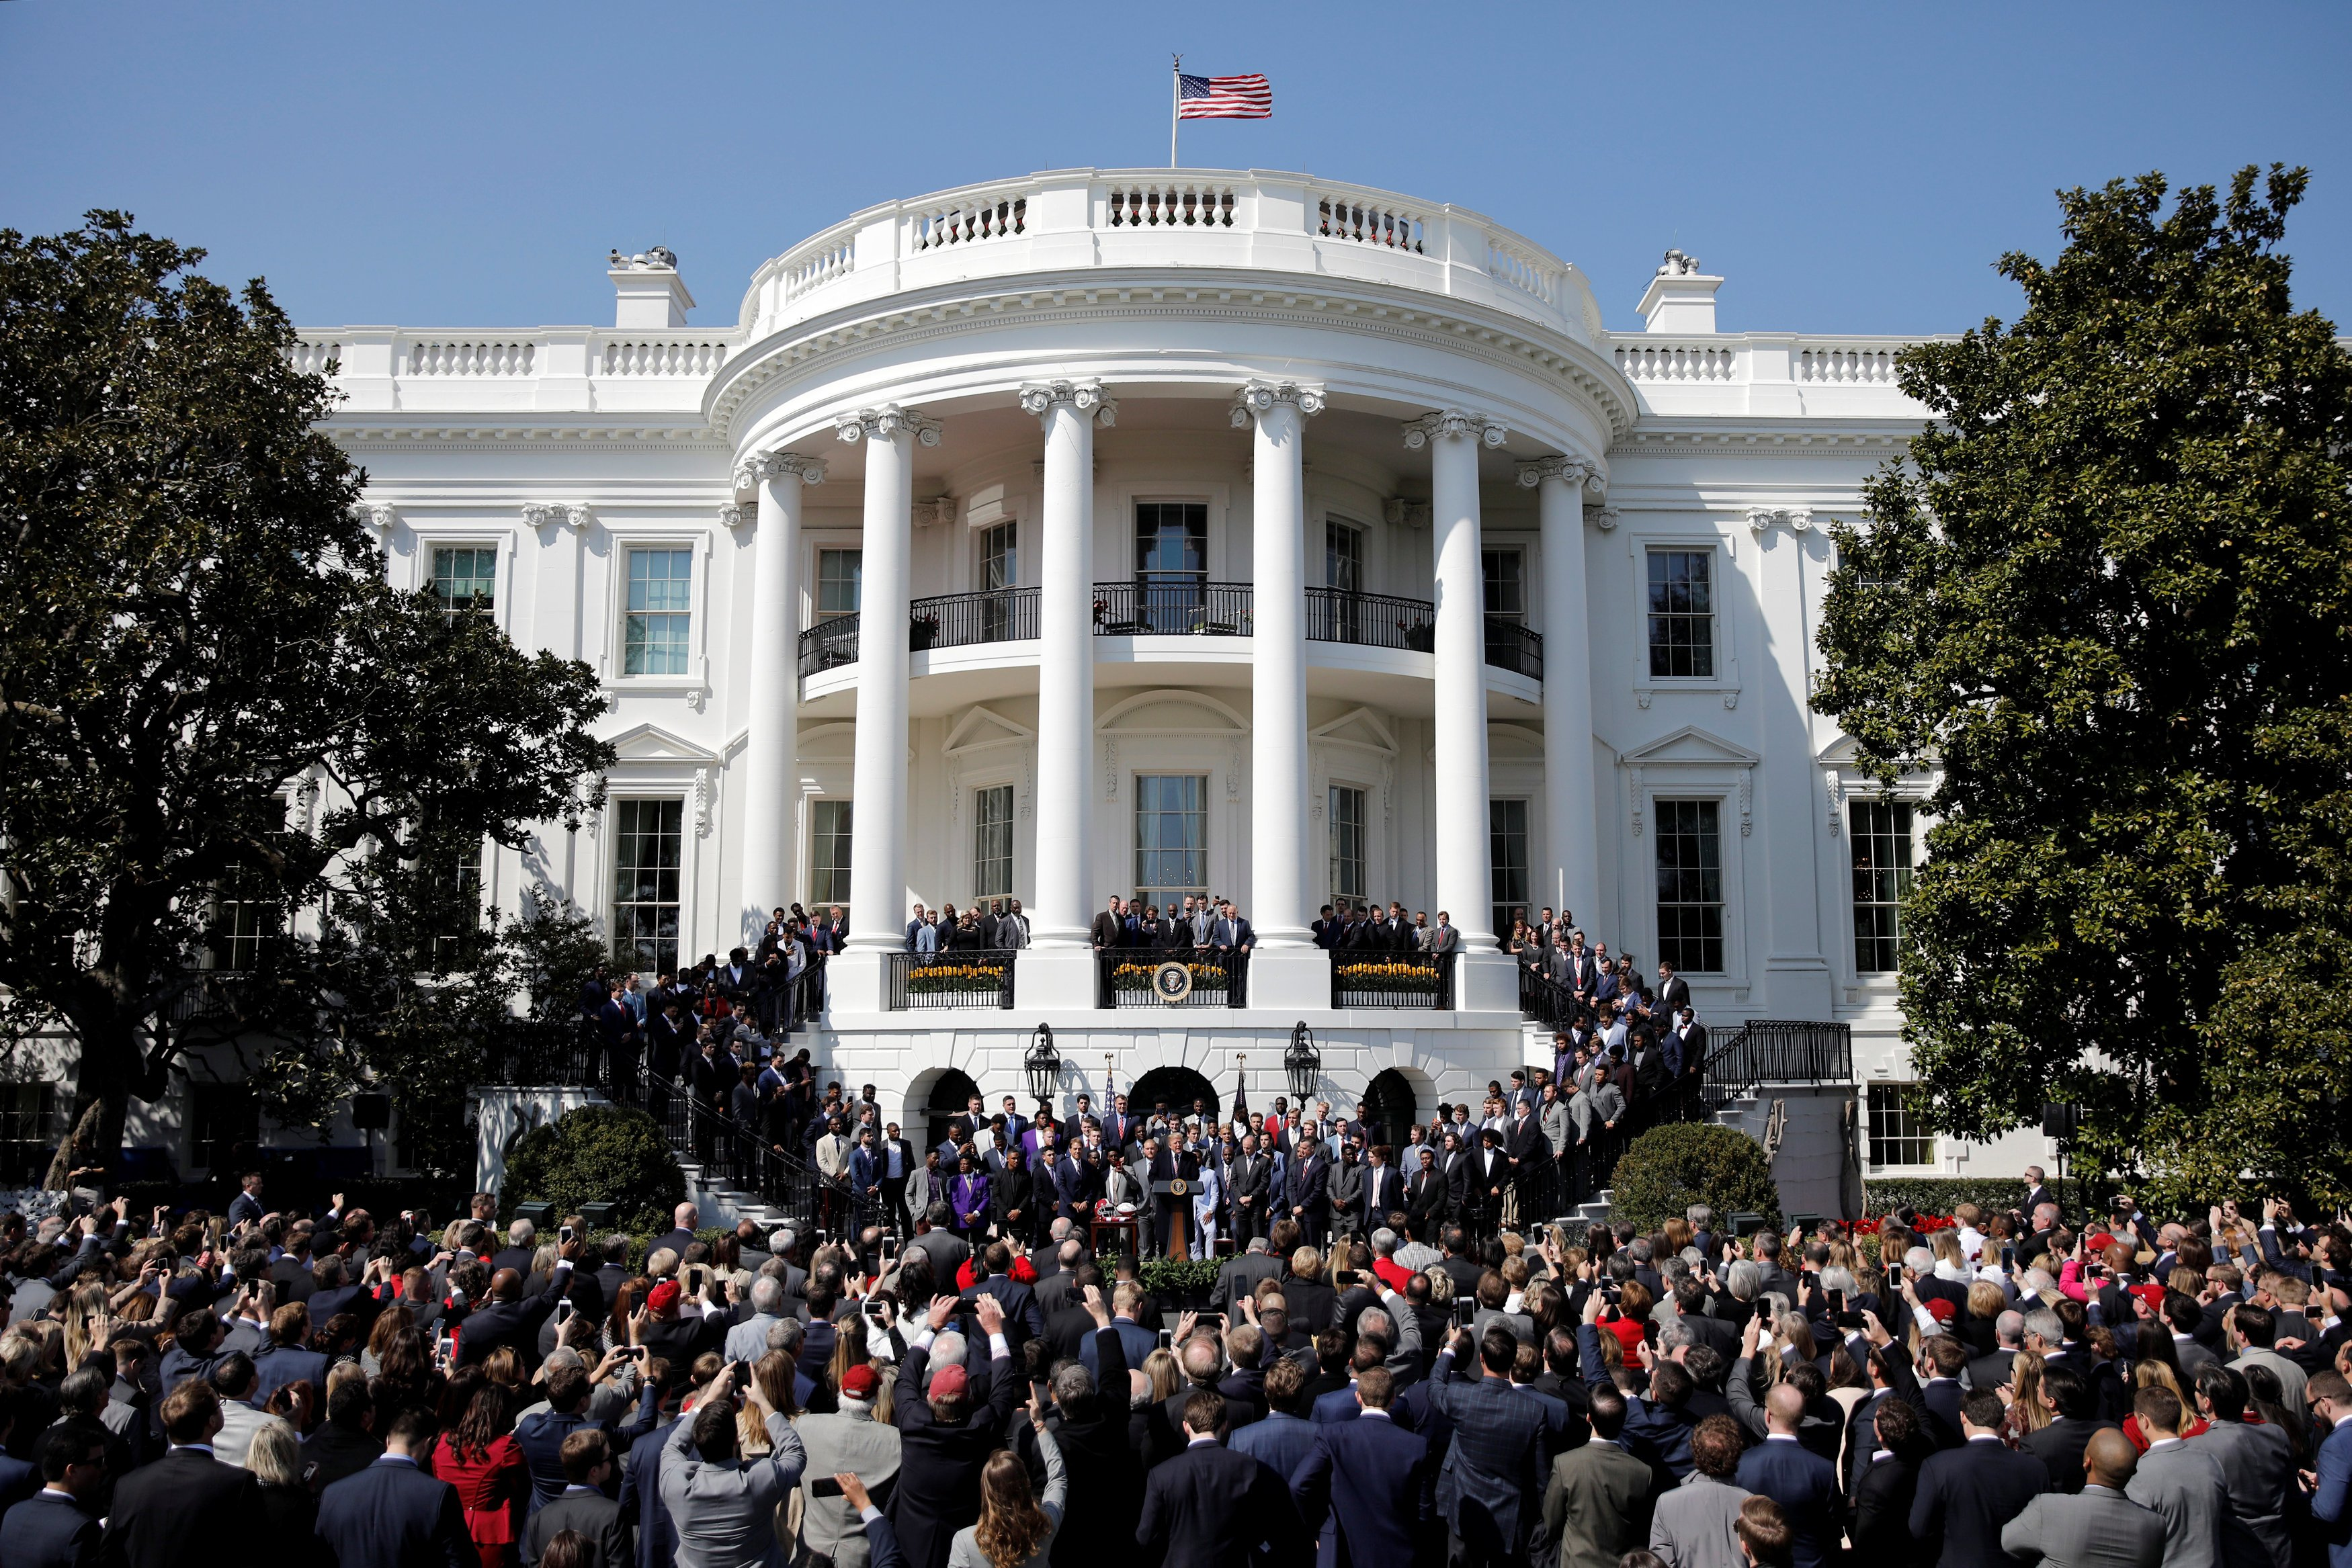 U.S. President Donald Trump welcomes the 2017 NCAA Football National Champions, The Alabama Crimson Tide  during an event at the South Lawn of the White House in Washington